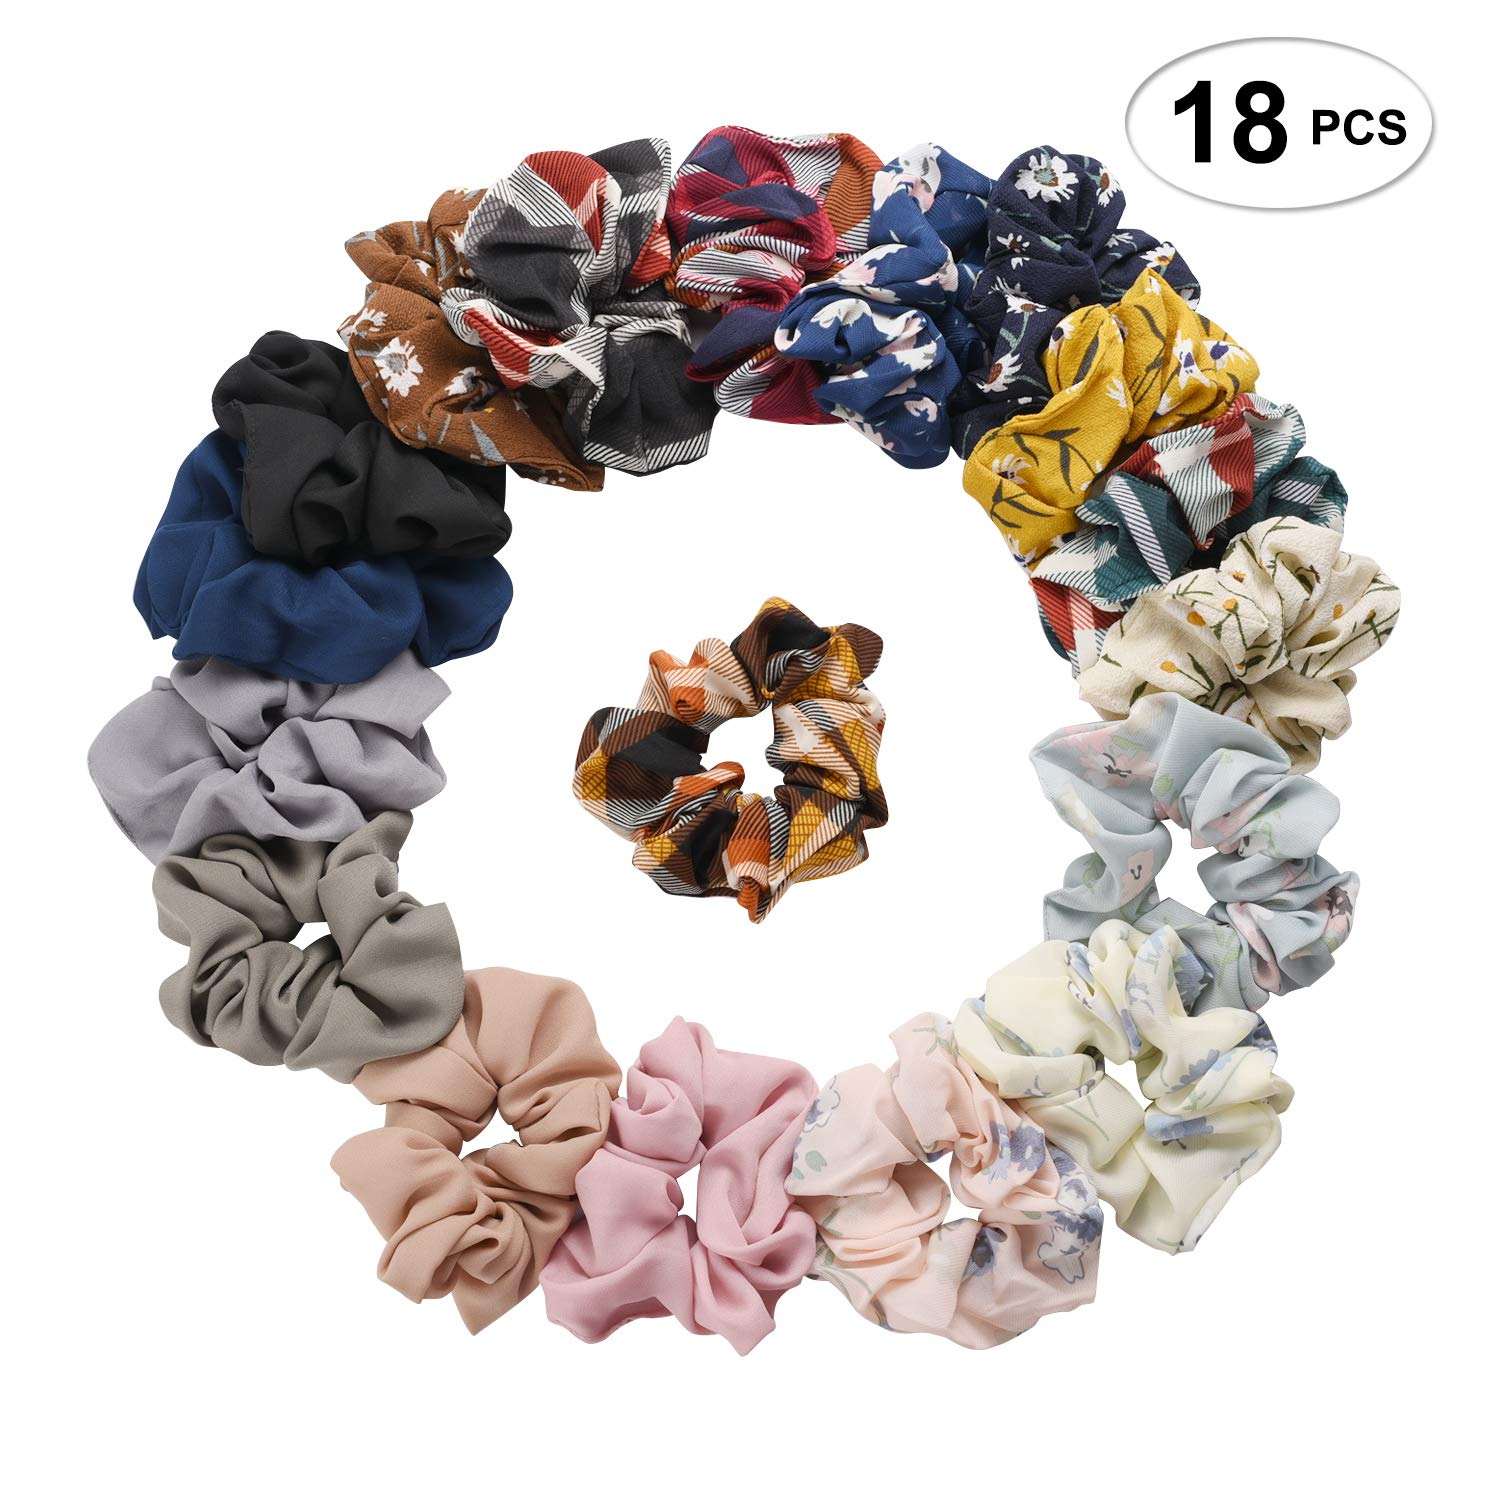 SEVEN STYLE 18 Pcs Colors Women's Chiffon Flower Hair Scrunchies Hair Bow Chiffon Ponytail Holder,Including 12 Colors Chiffon Flower Hair Scrunchies and 6 Solid Colors Chiffon Hair Ties